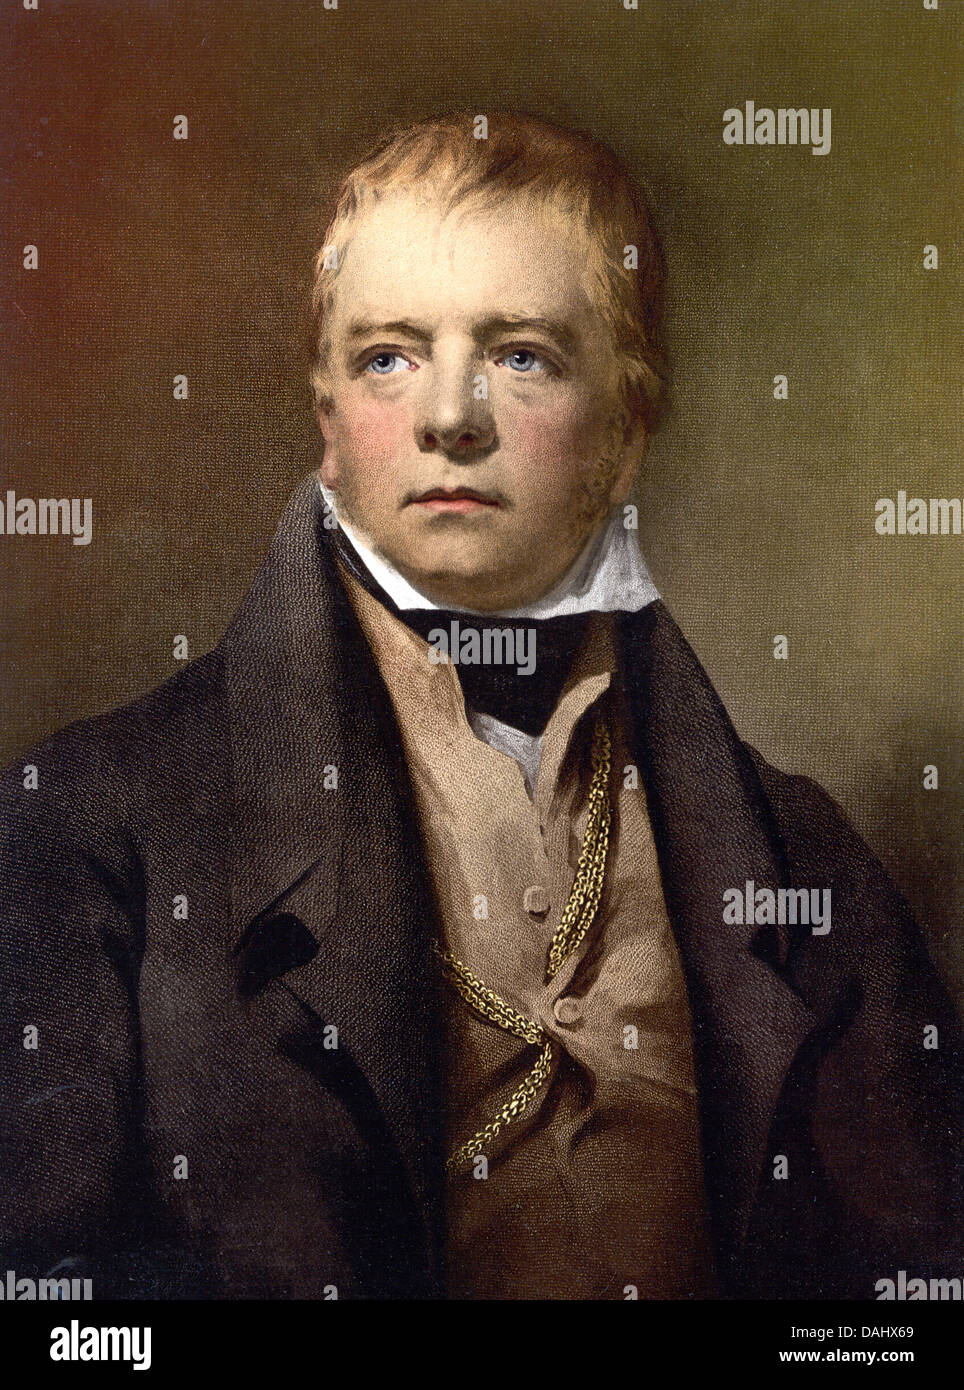 Sir Walter Scott, Scottish historical novelist, playwright, and poet - Stock Image